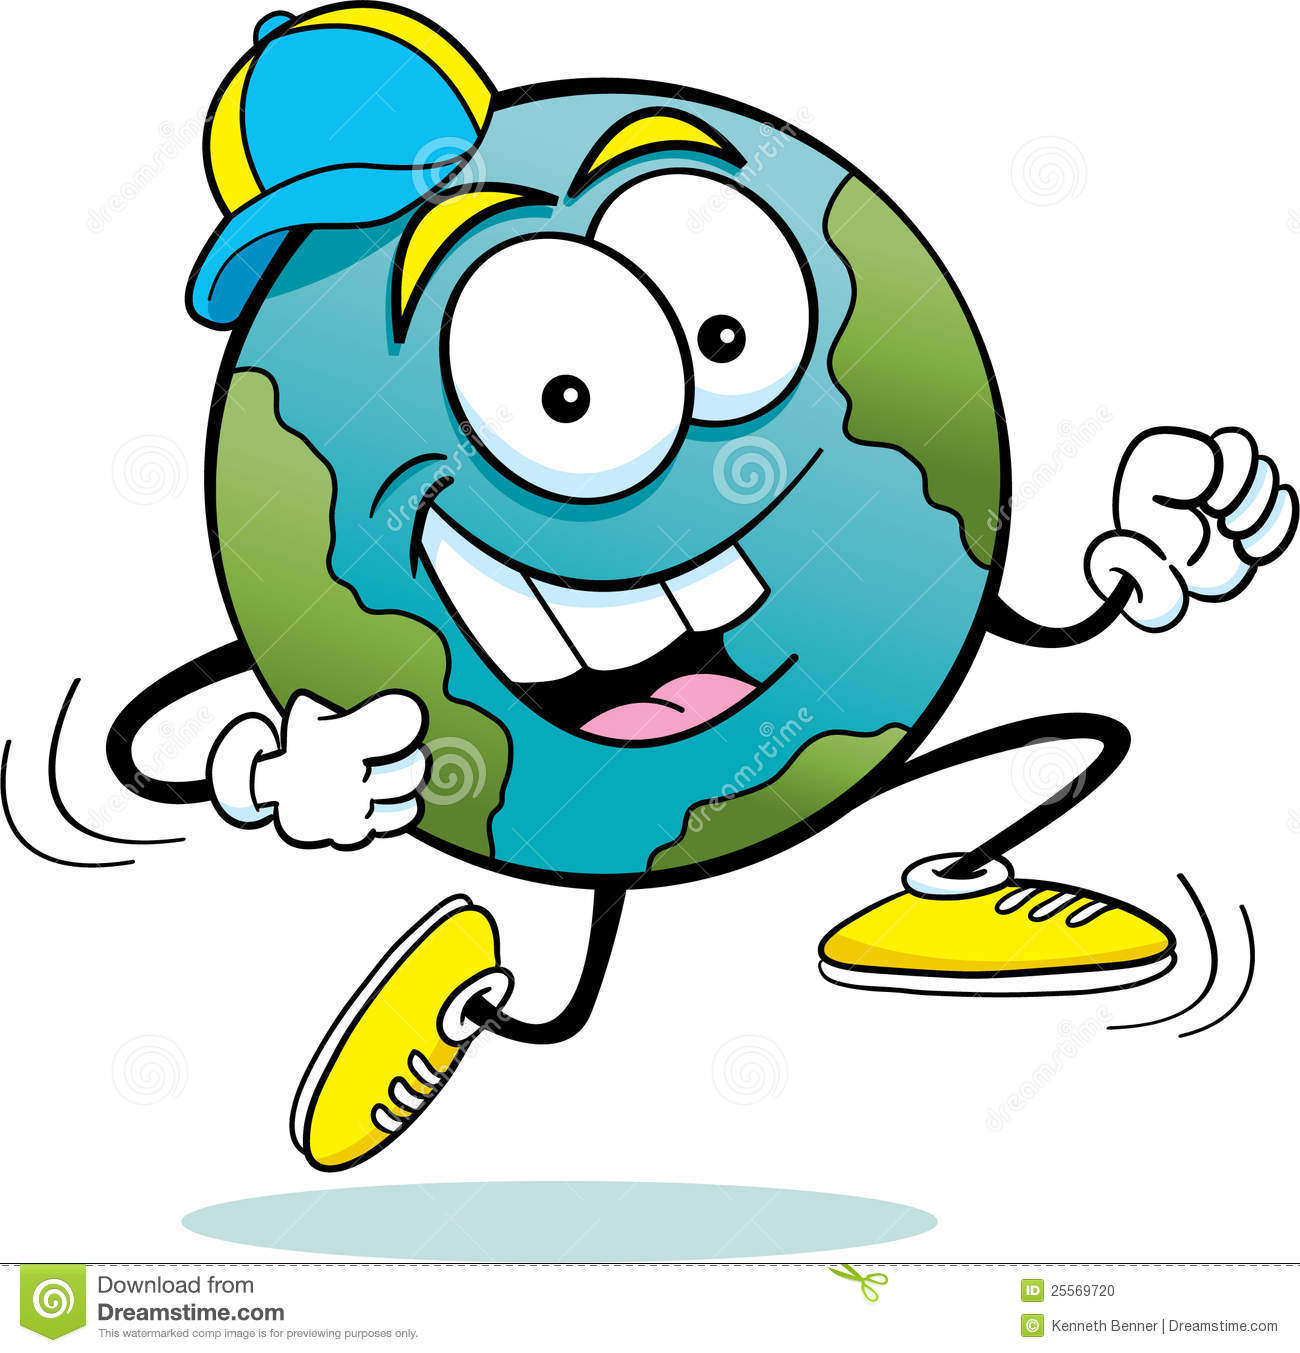 Geography clipart 3 » Clipart Station.